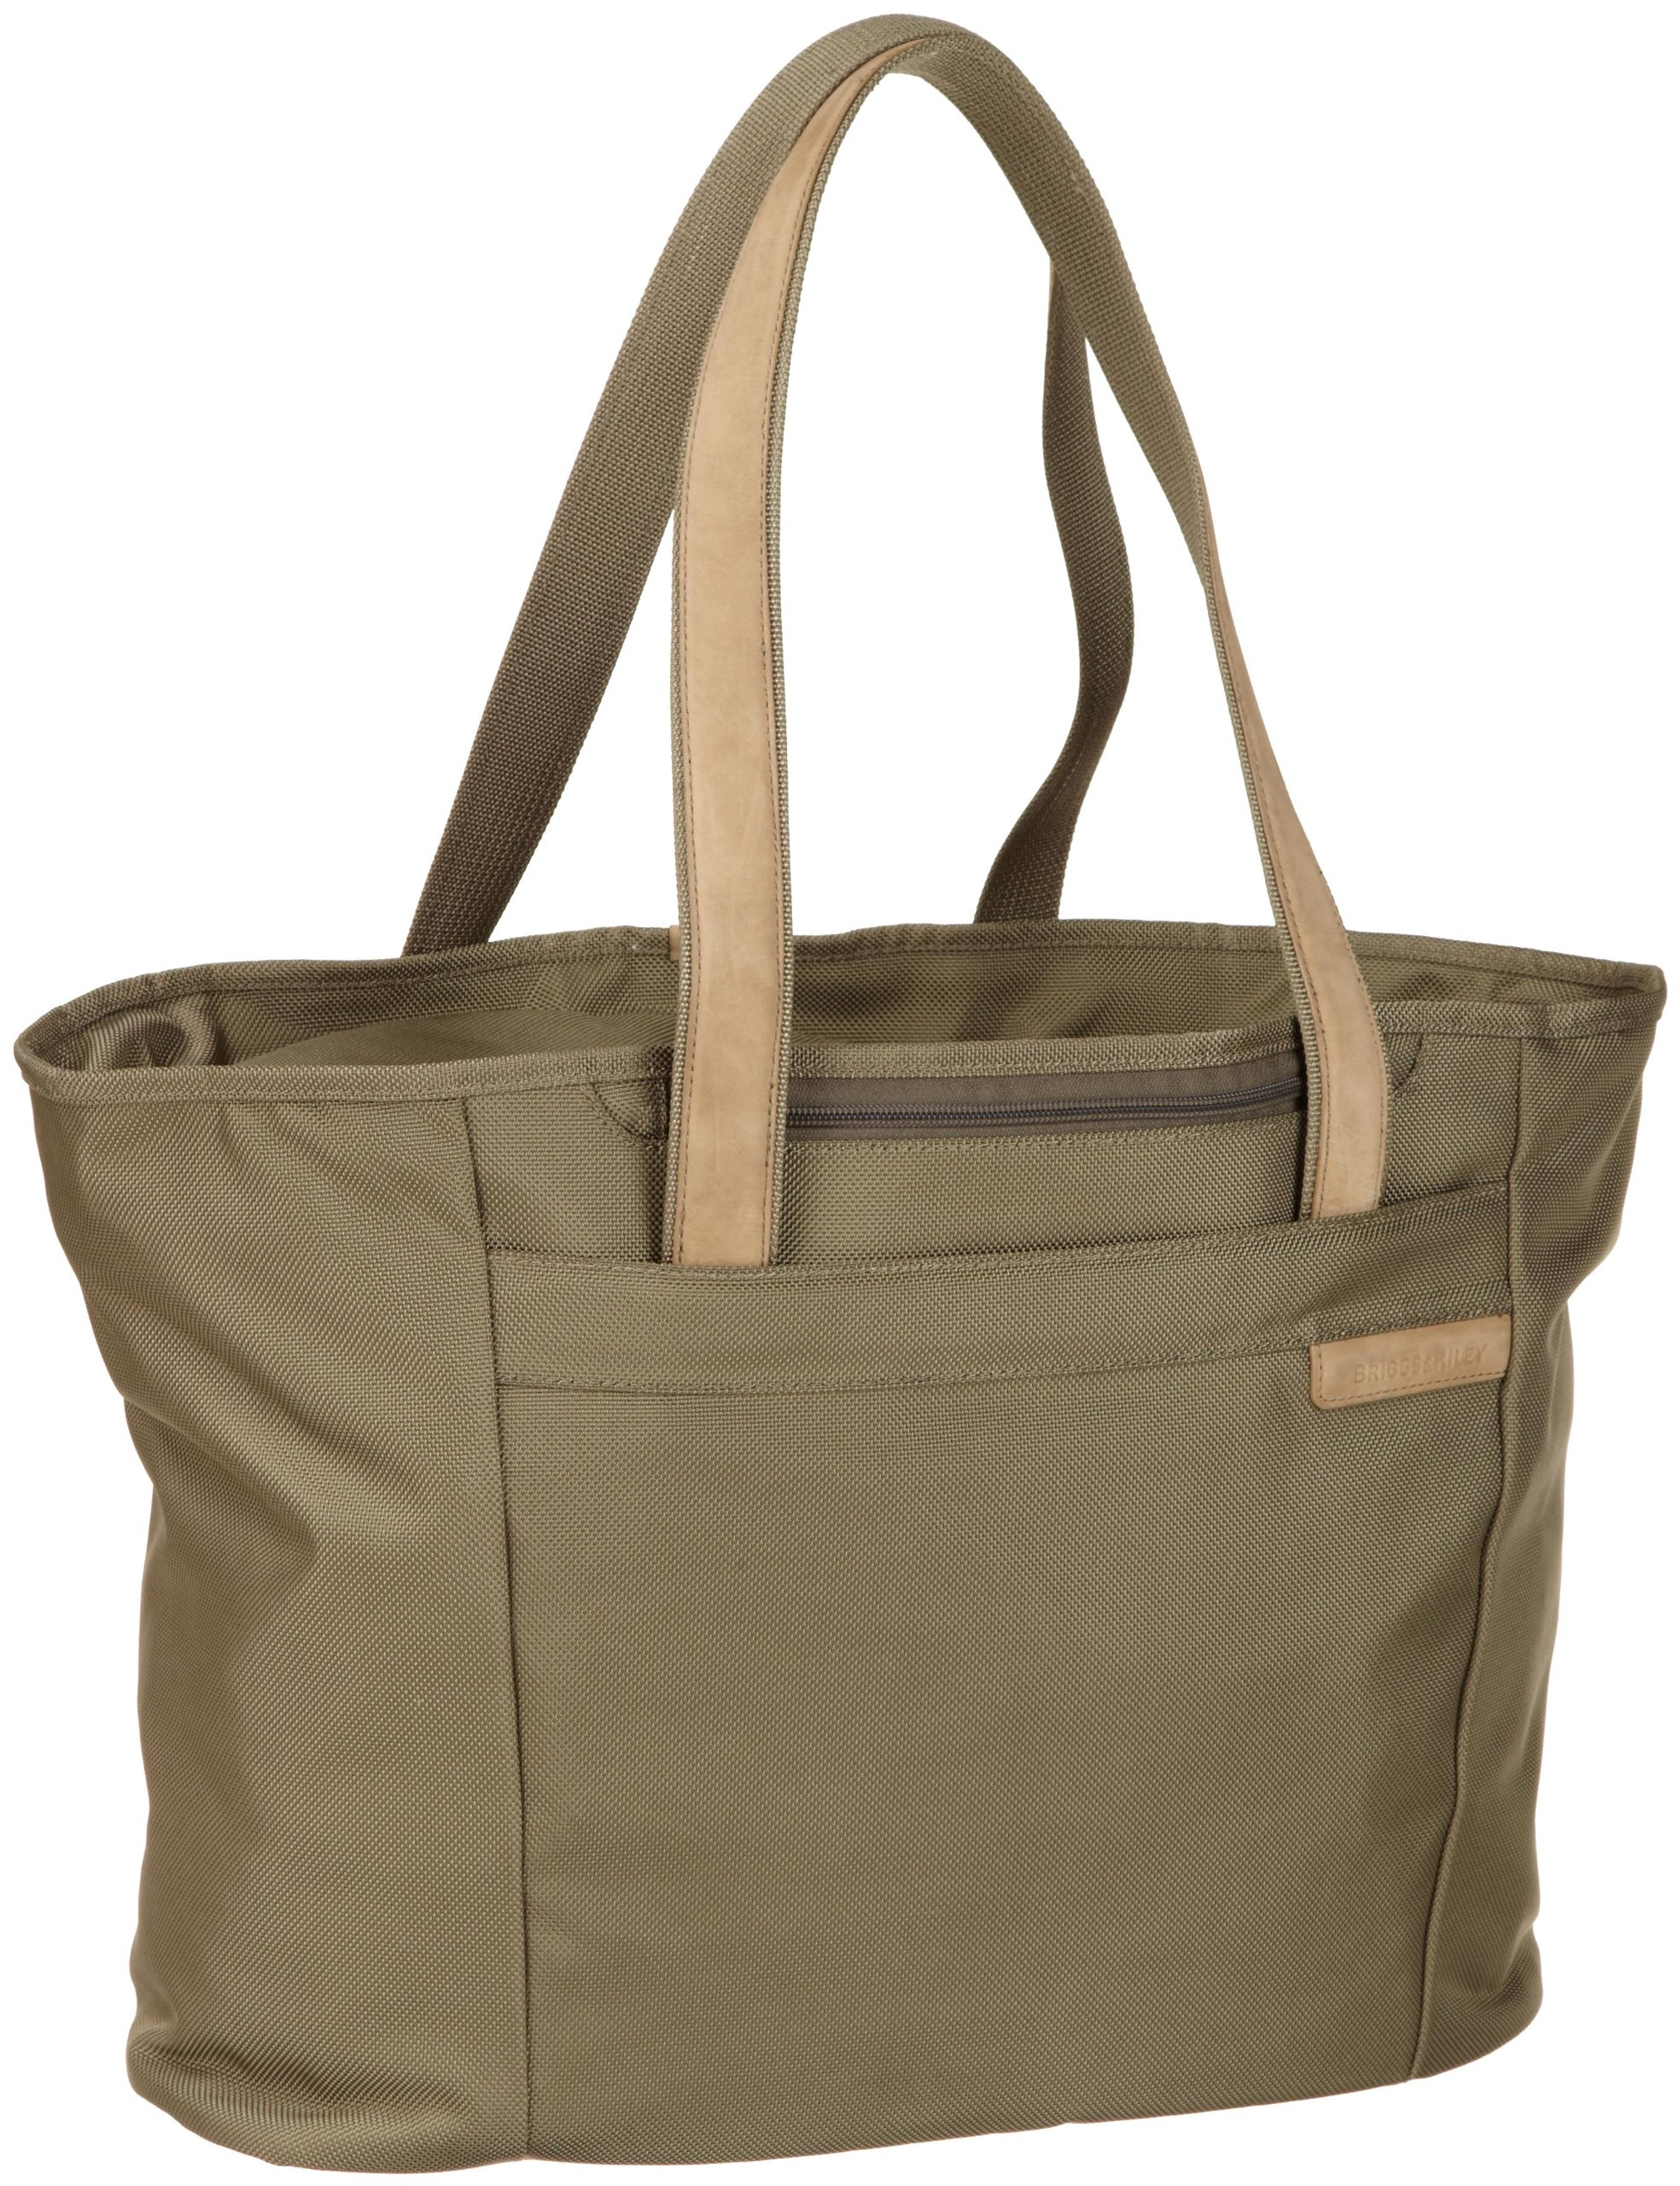 Briggs & Riley Baseline Large Shopping Tote,Olive,13x17x7.3 by Briggs & Riley (Image #2)